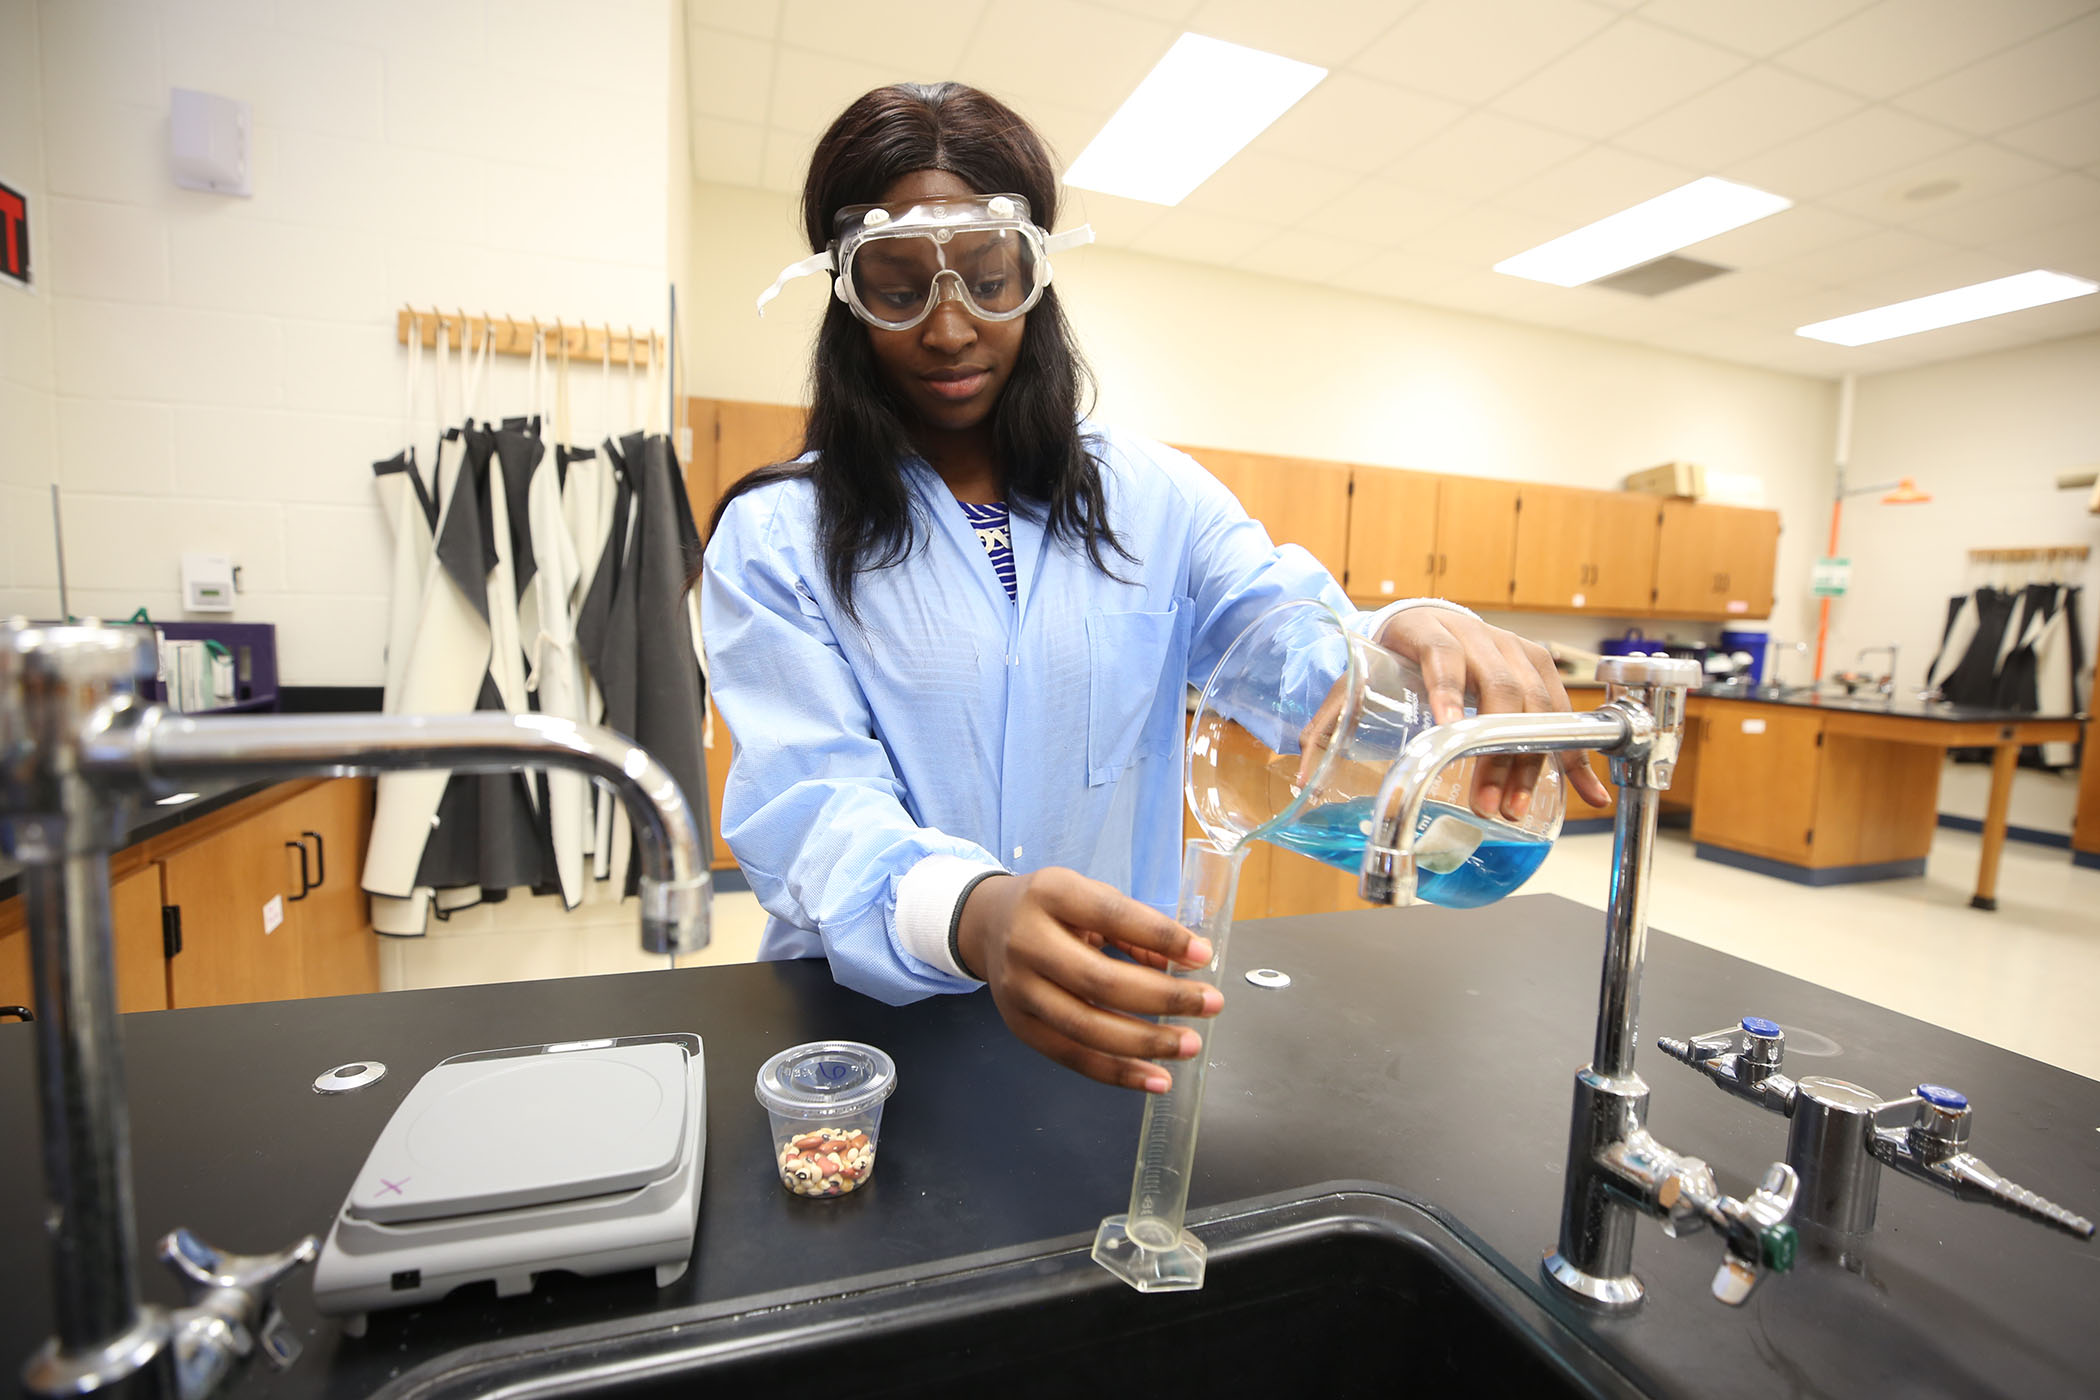 AA'Cahsha poses in the chemistry lab.